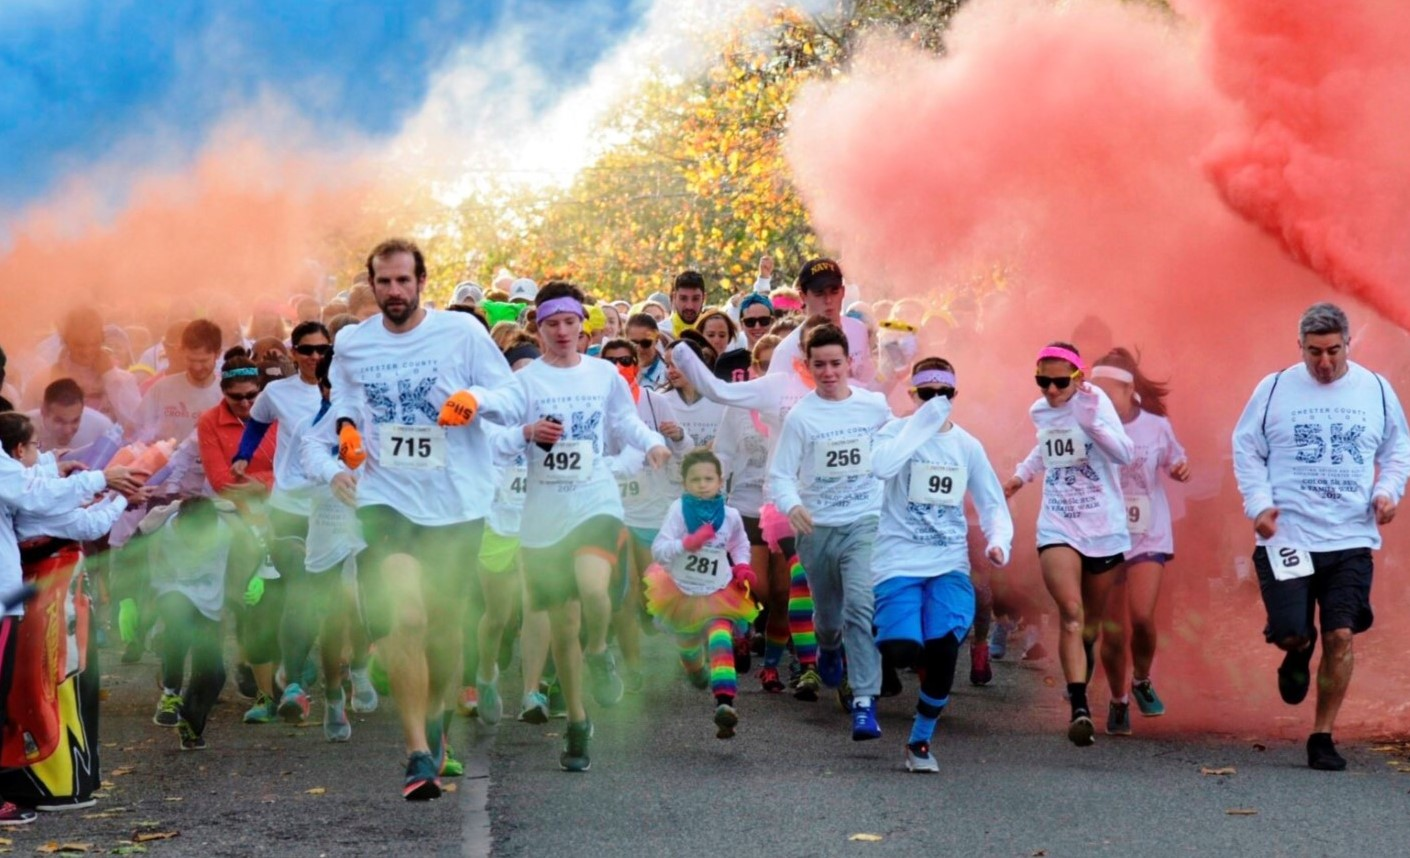 Independence Blue Cross to Sponsor County's Color 5K That Raises Funds to Combat Opioid Epidemic